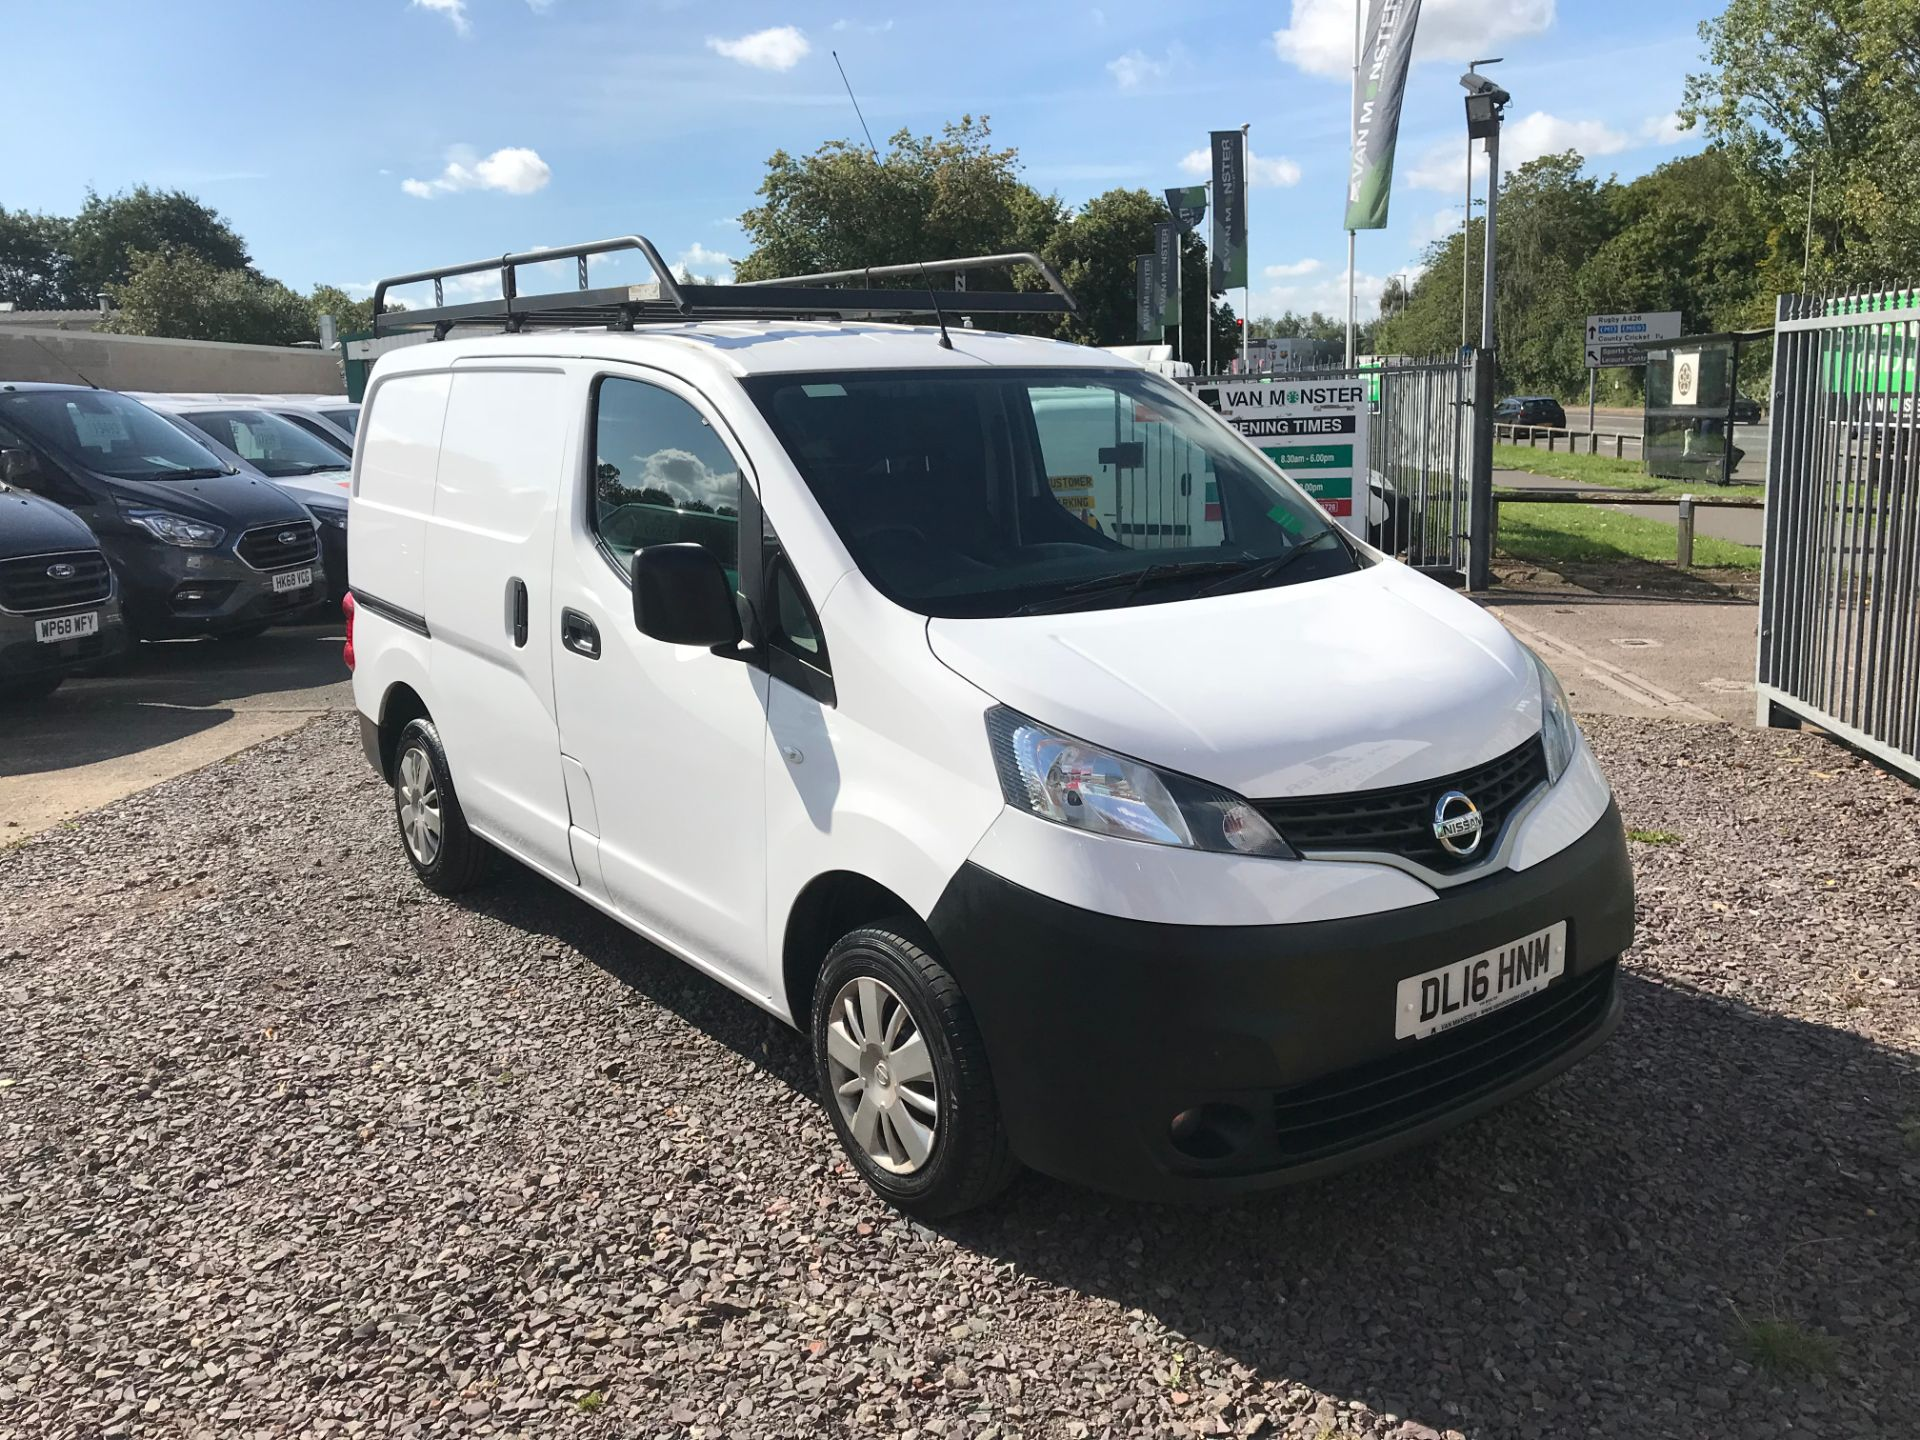 2016 Nissan Nv200 1.5 DCI ACCENTA EURO 5 (DL16HNM) Image 1